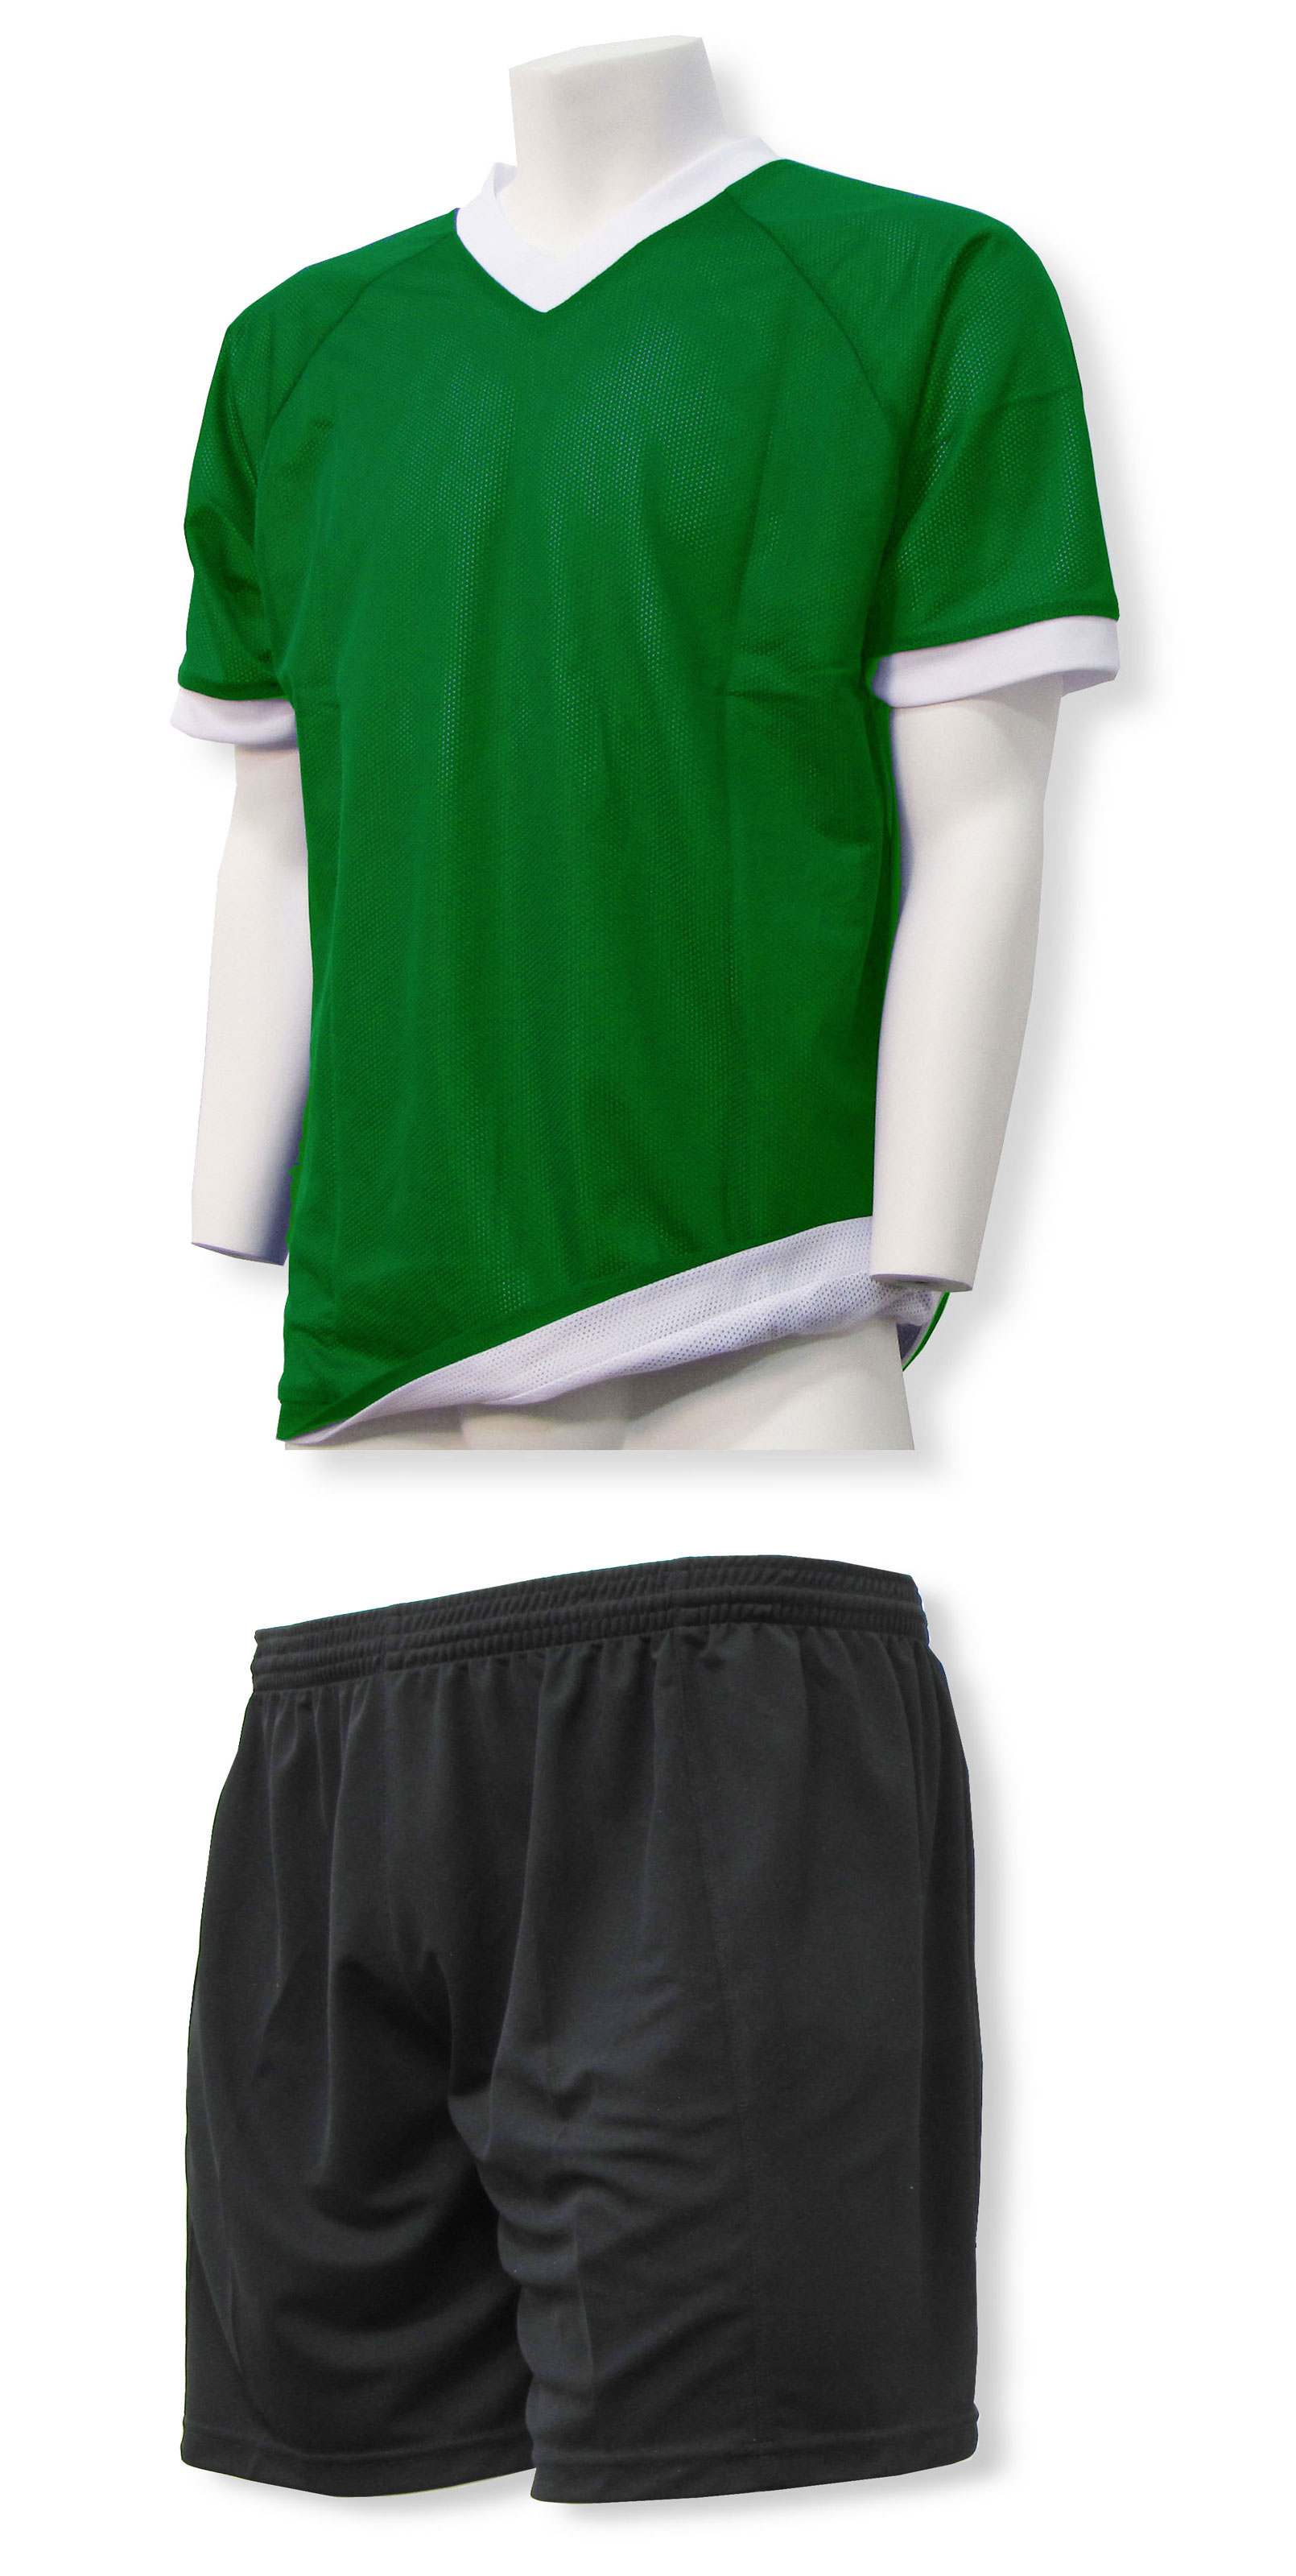 Reversible sports uniform jersey in kelly / white with black shorts by Code Four Athletics